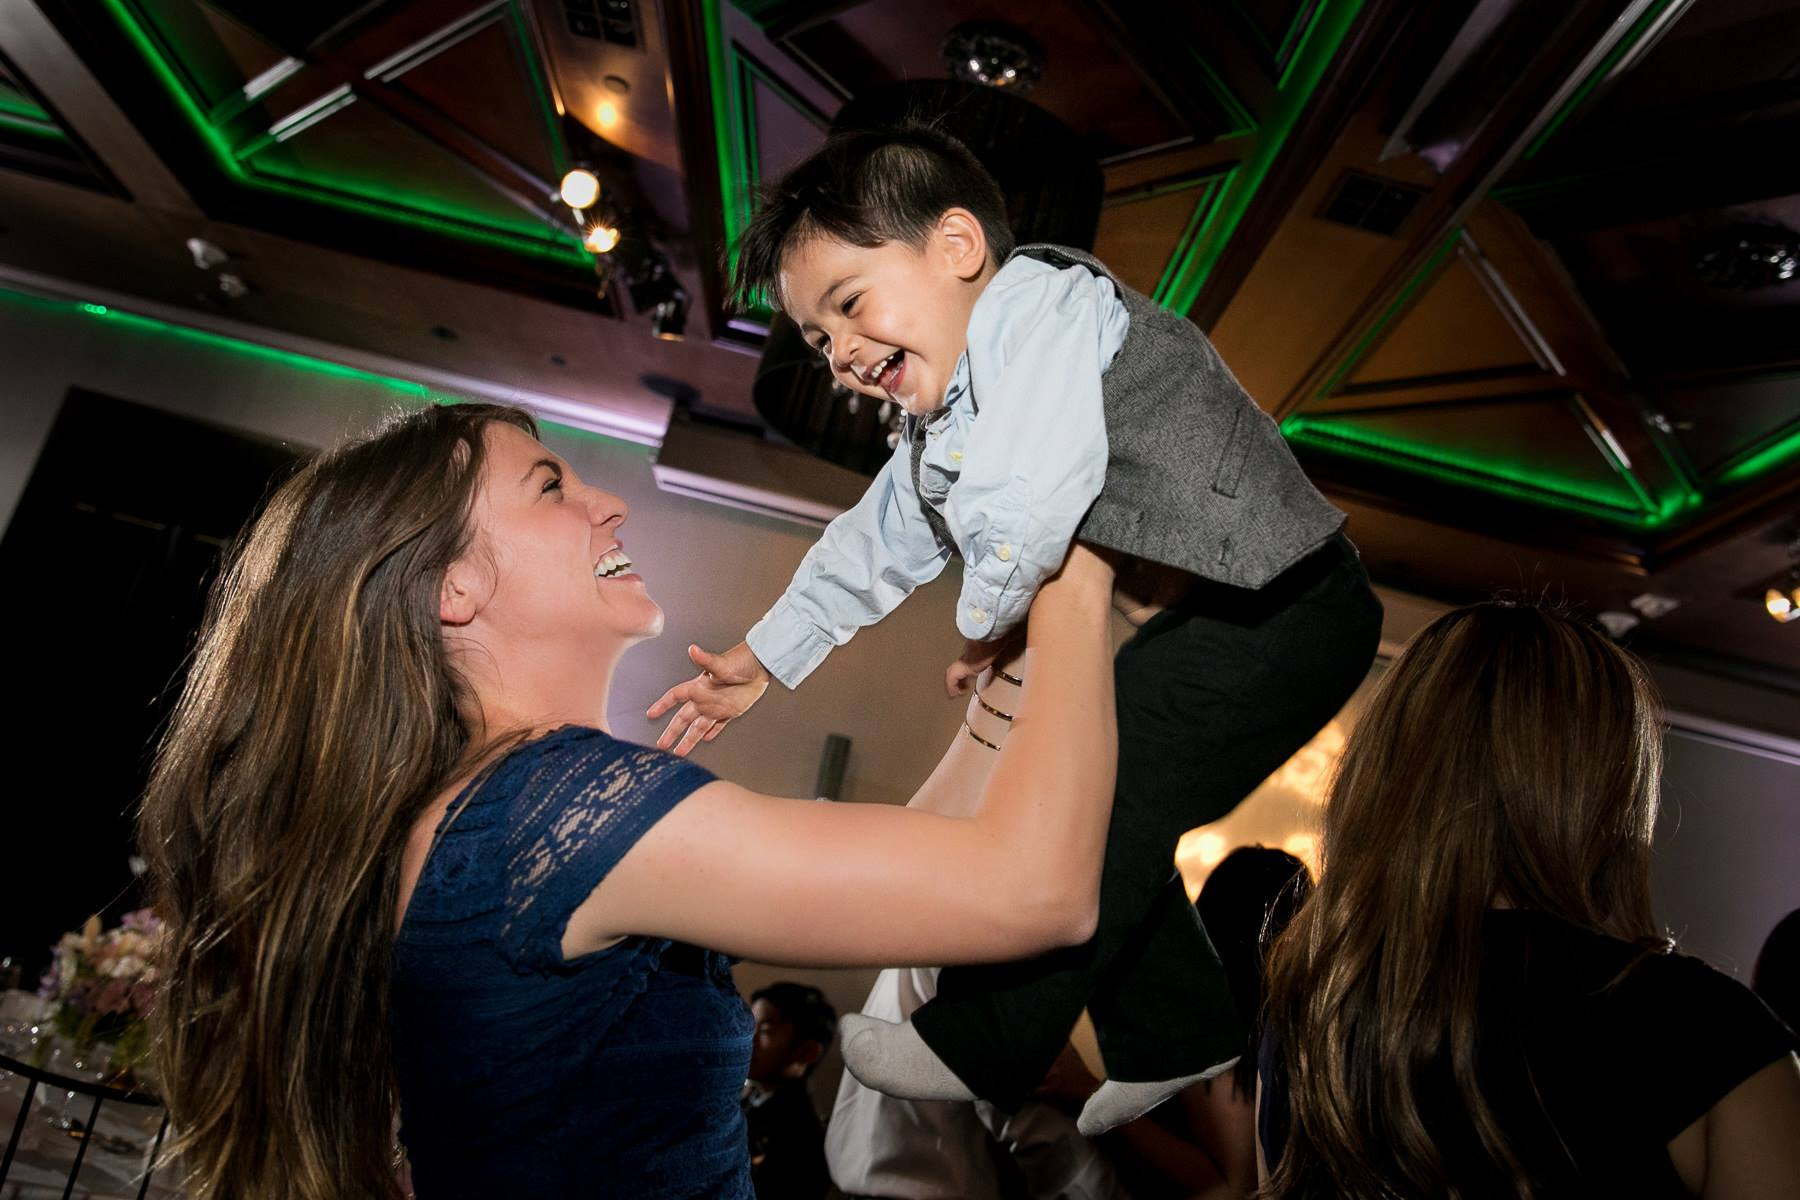 first 5 california commercial stars luca  and vanessa getting airtime on dance floor at noor pasadena wedding photo